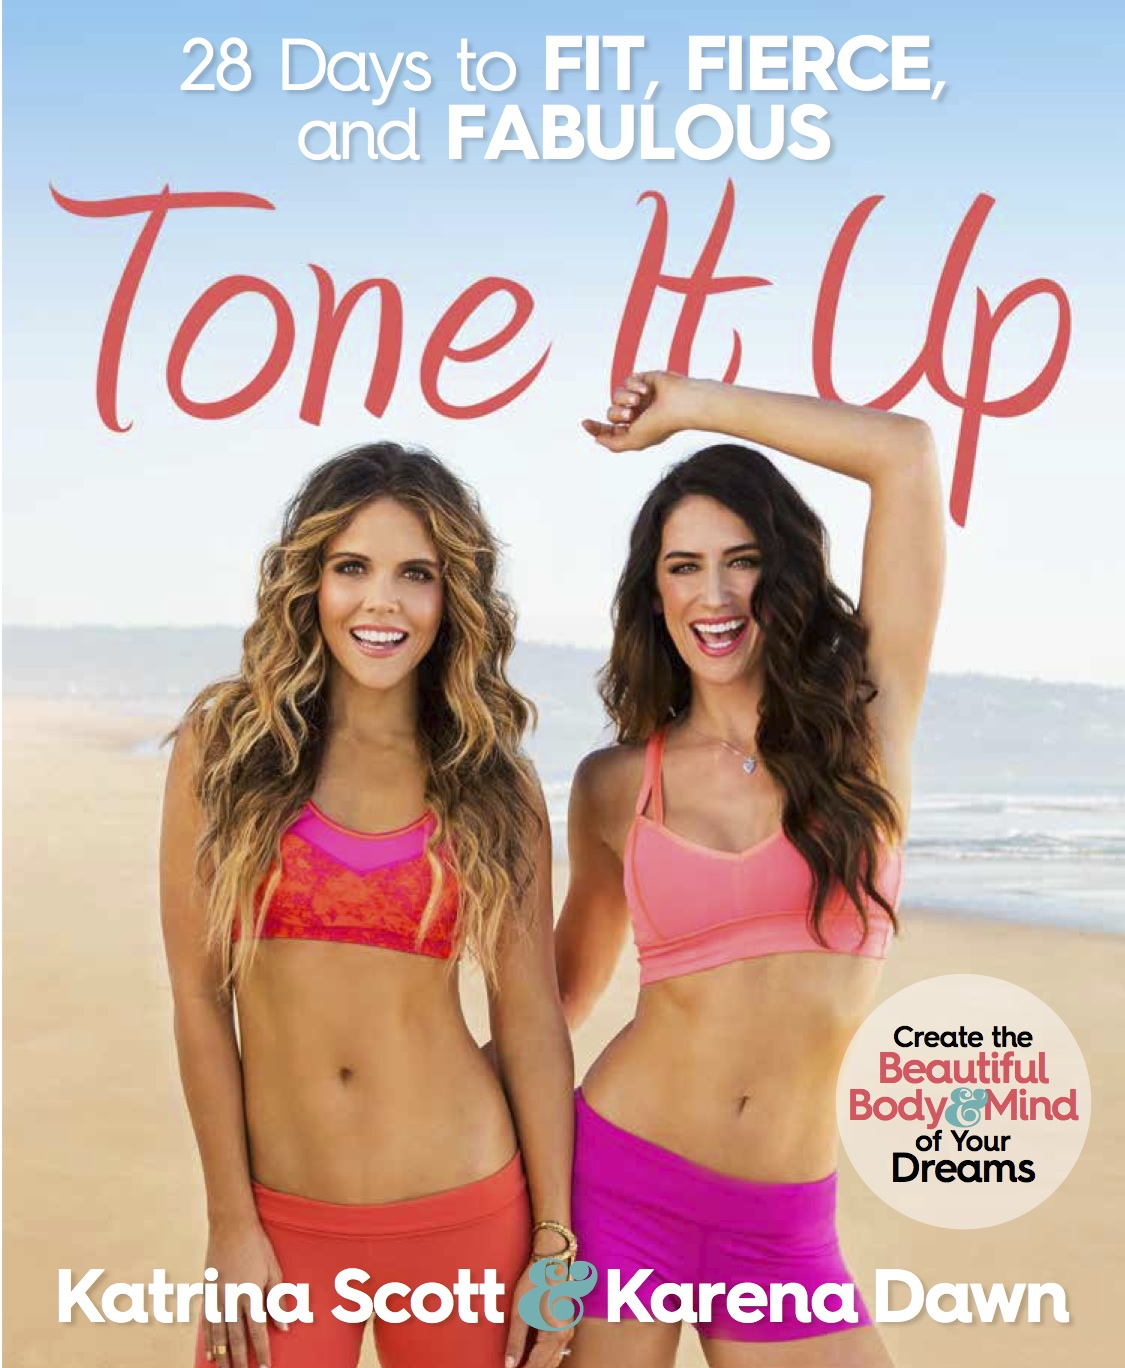 fit-fierce-fabulous-tone-it-up-book